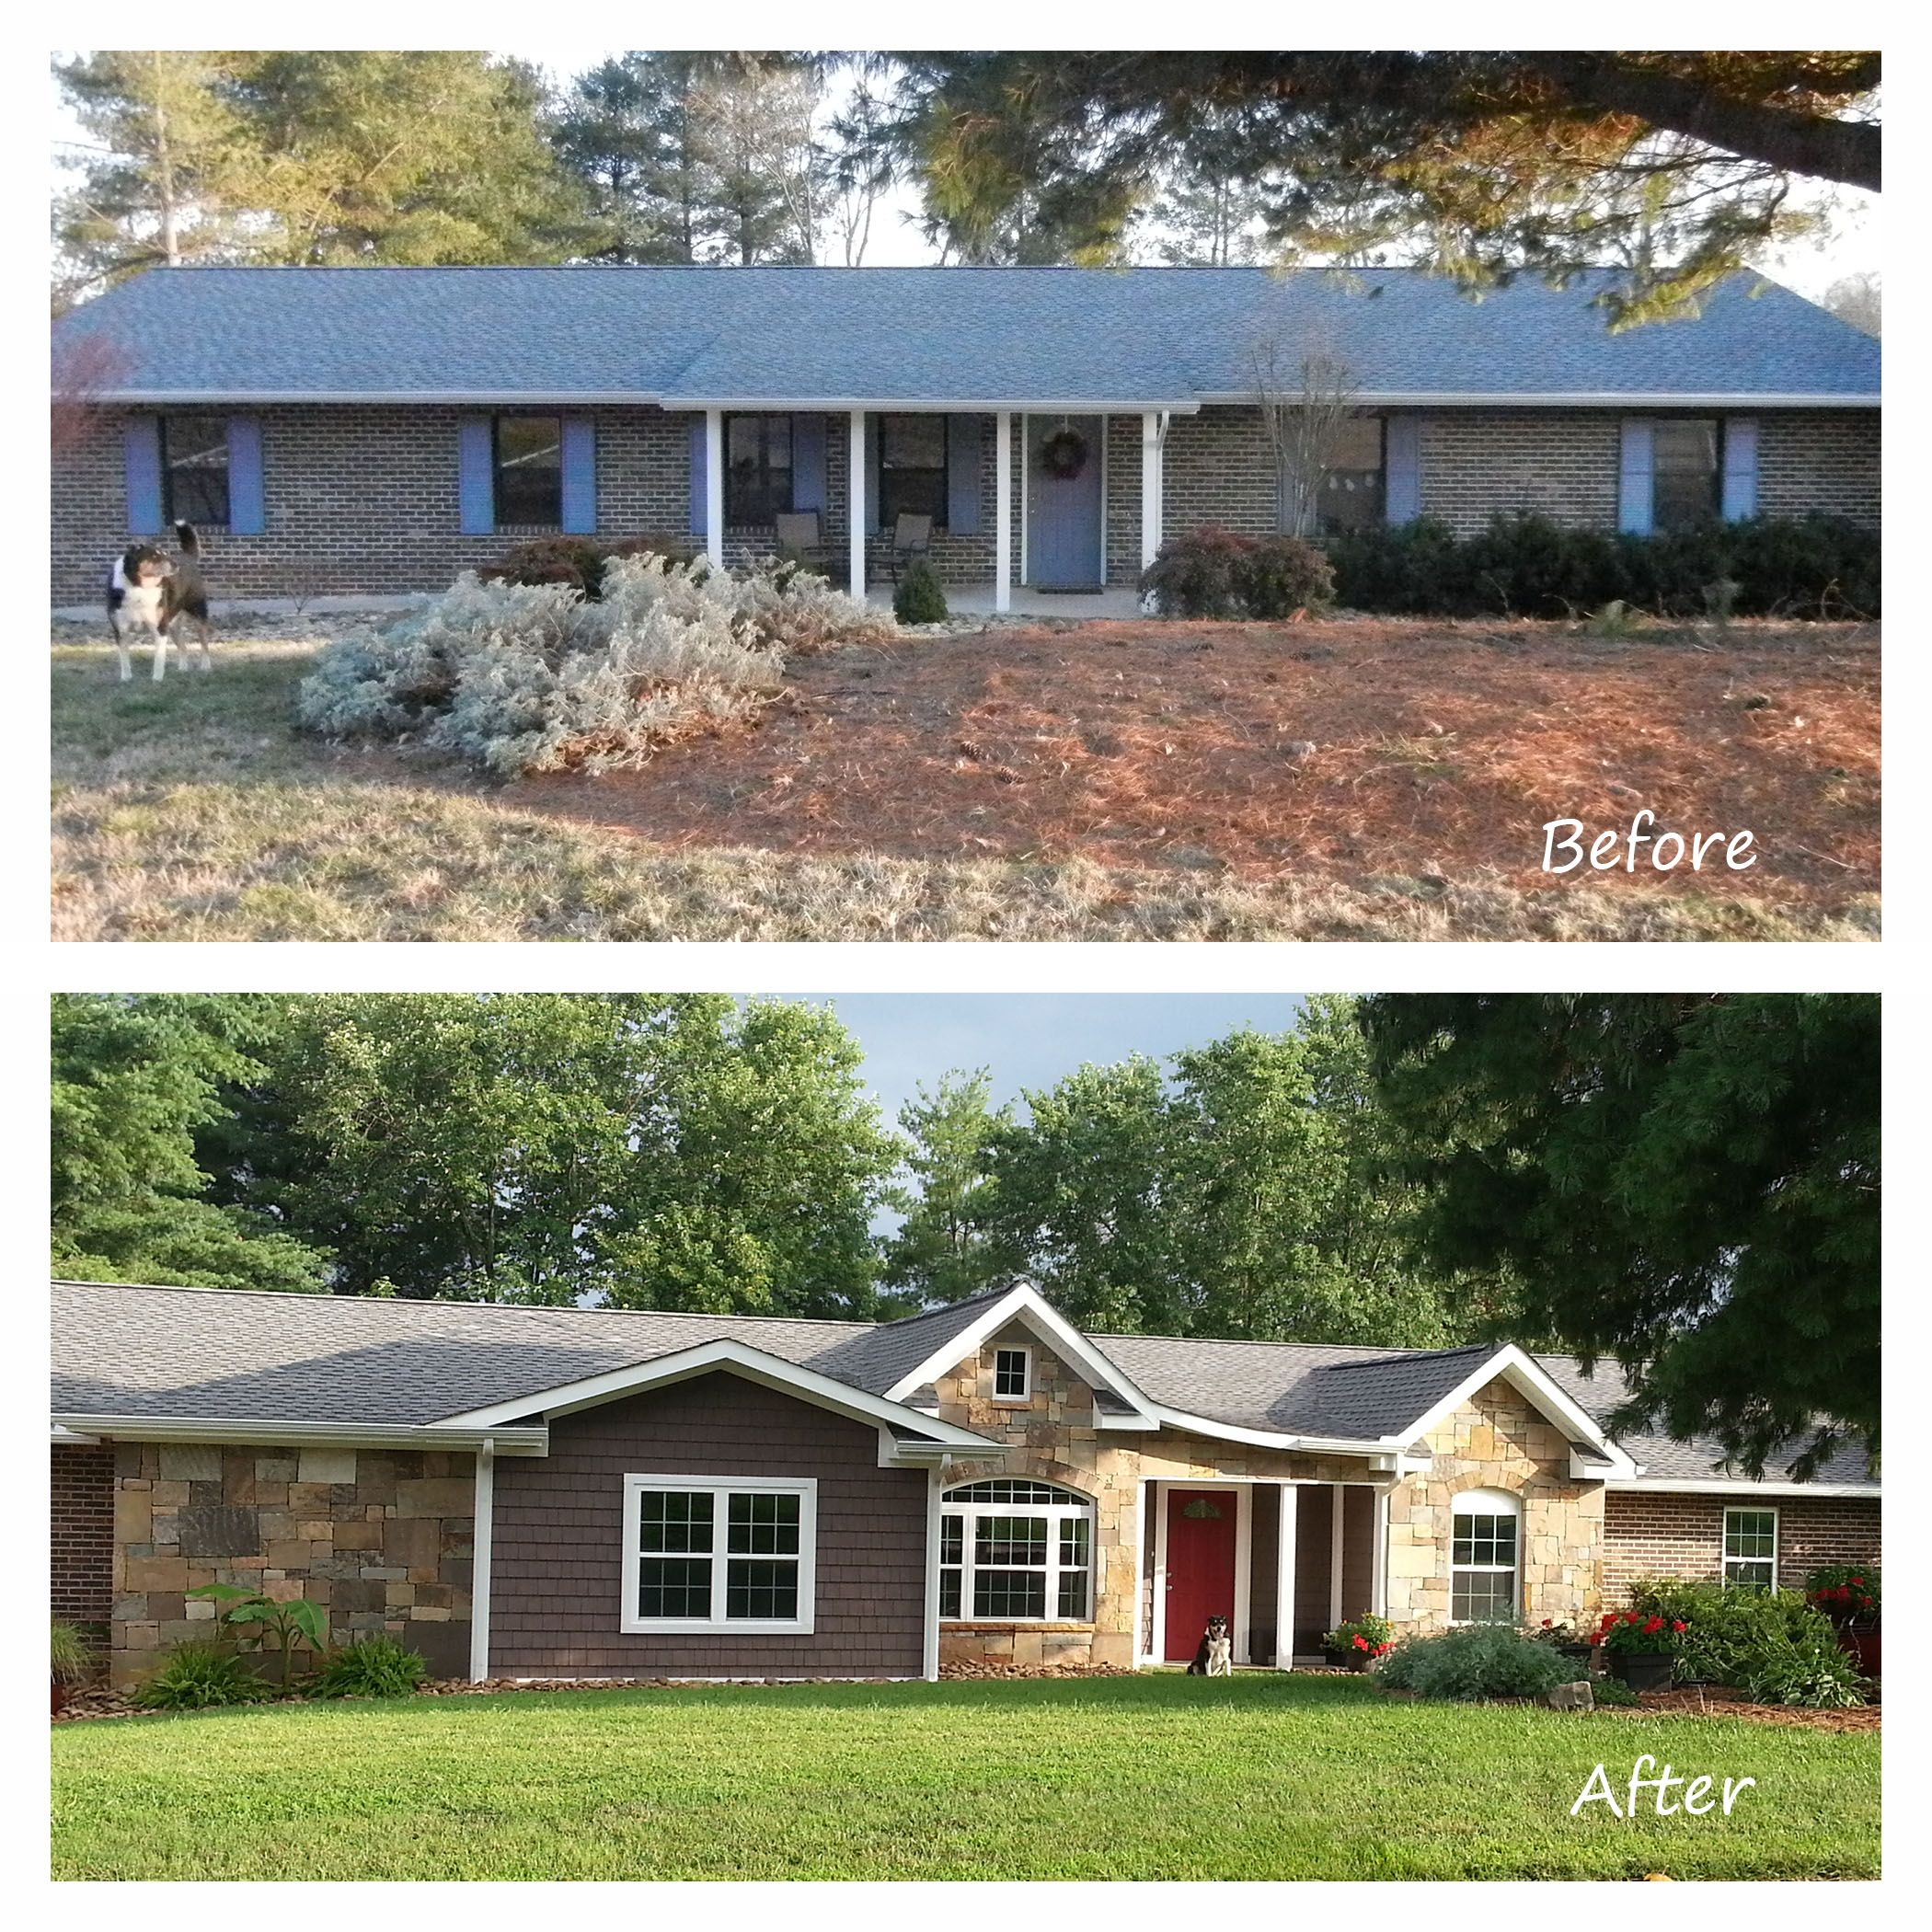 Before and after exterior renovation ranch house remodel for Exterior updates for ranch style homes